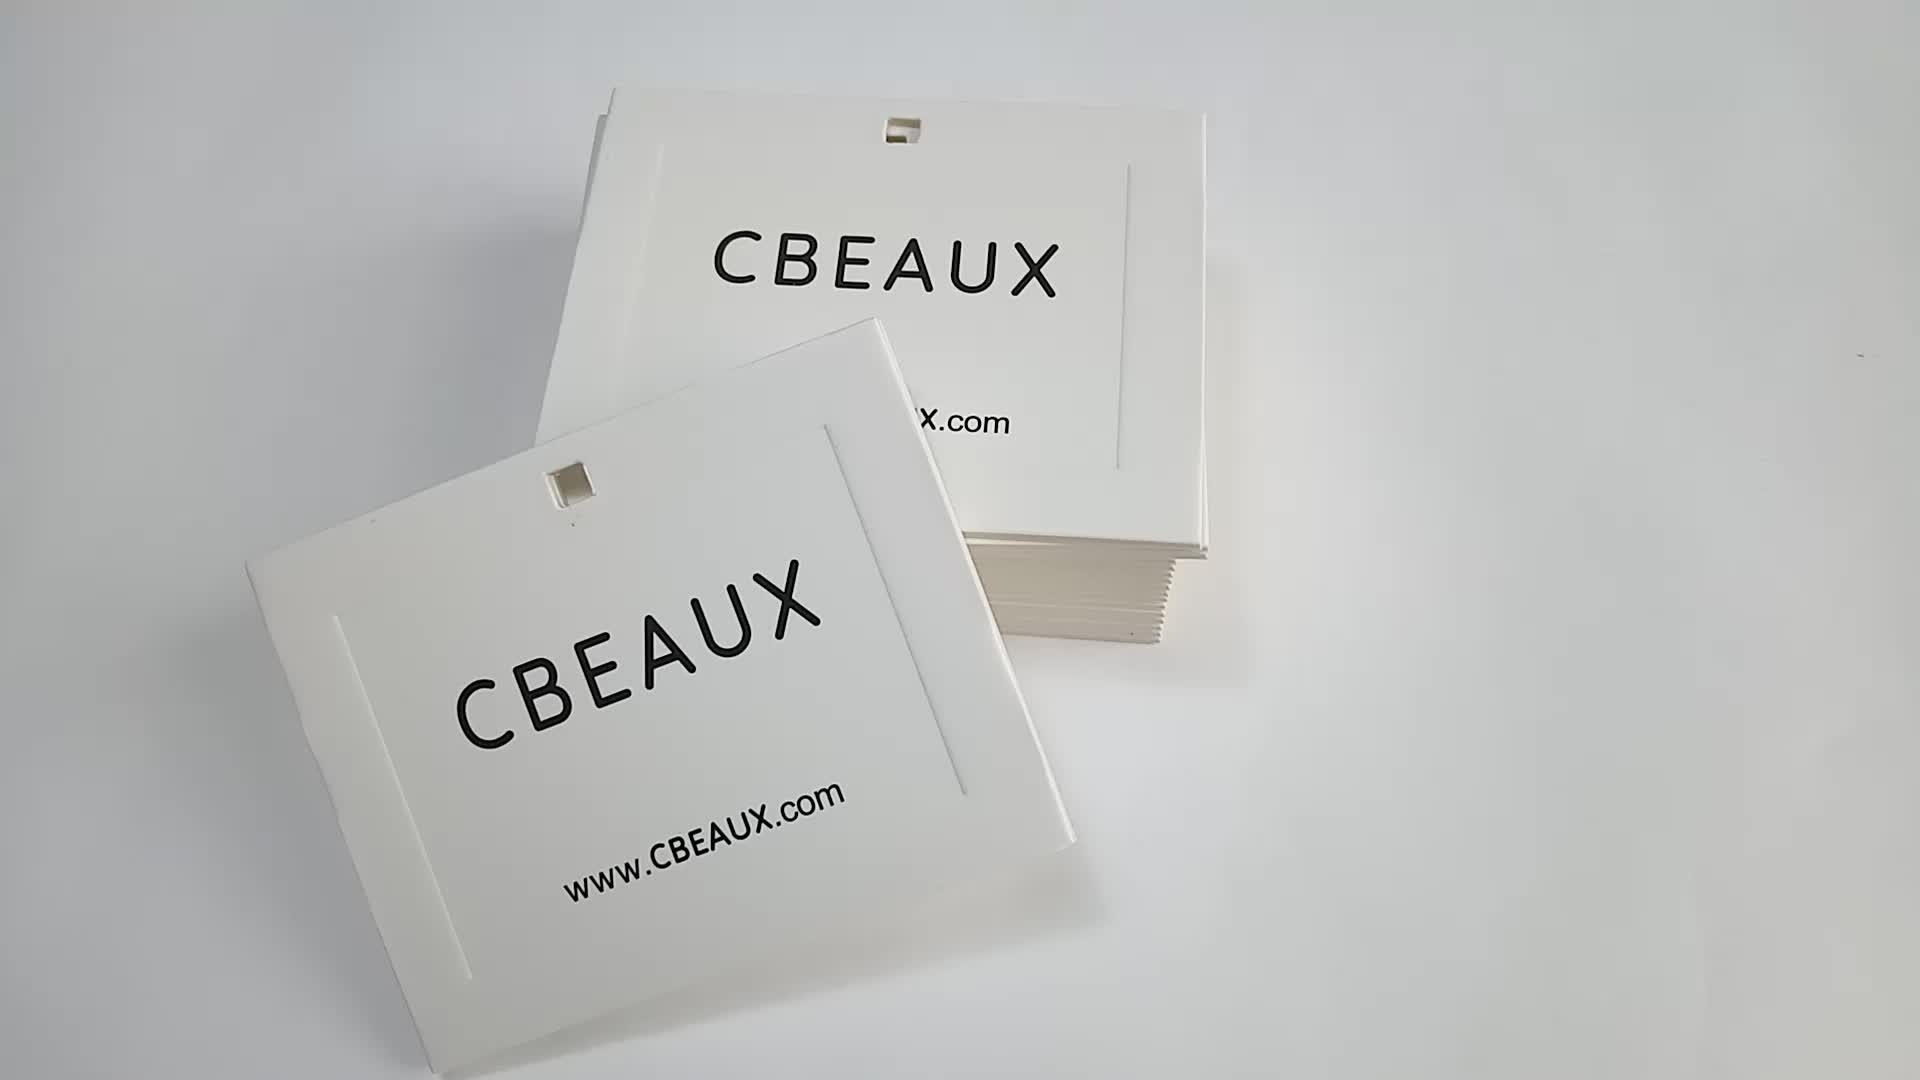 700gsm white cardboard garment clothing price tag with printed logo